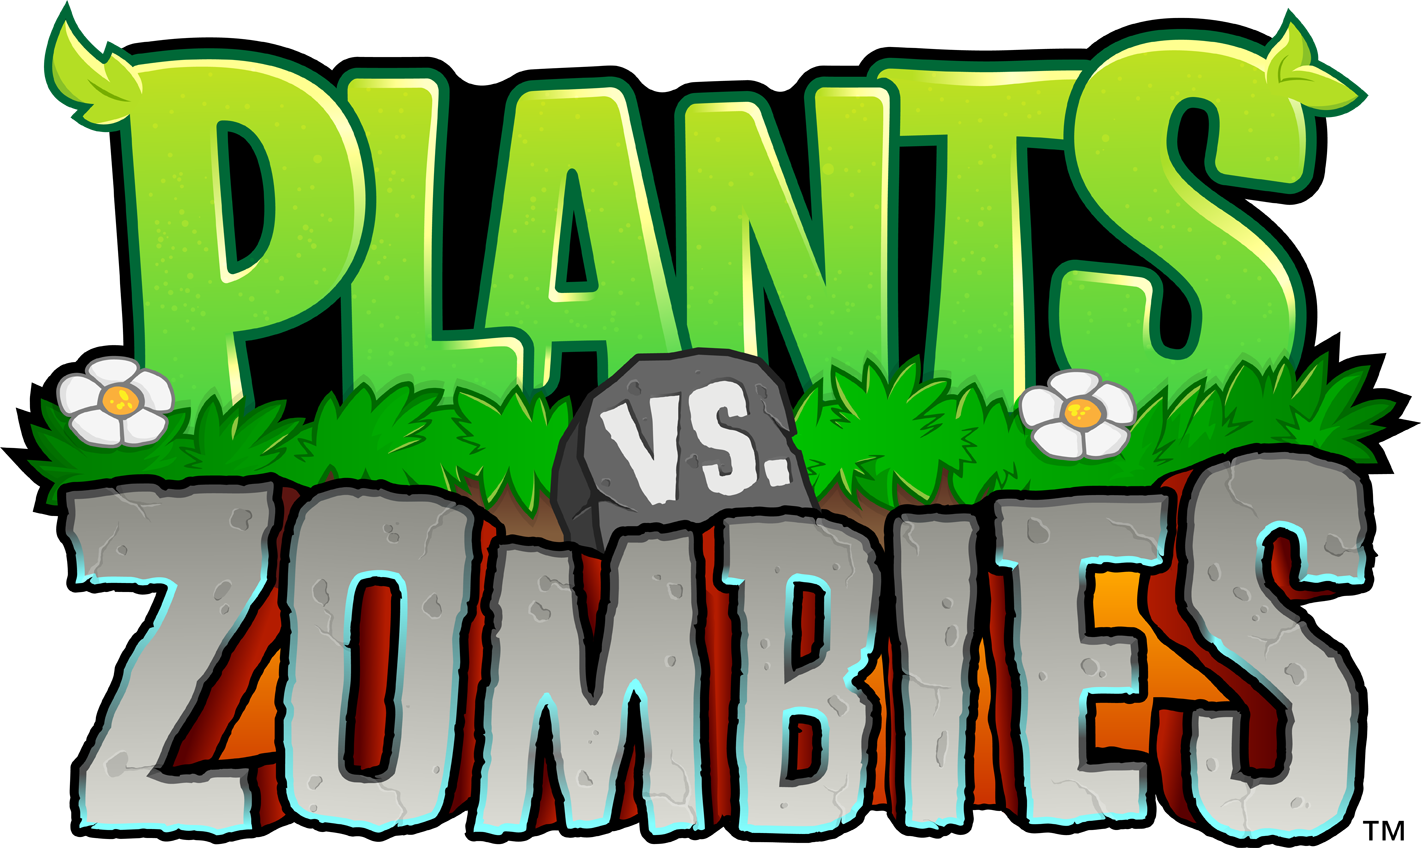 Plants vs. Zombies 3 leaves pre-alpha testing, enters soft launch in select territories - Android Police